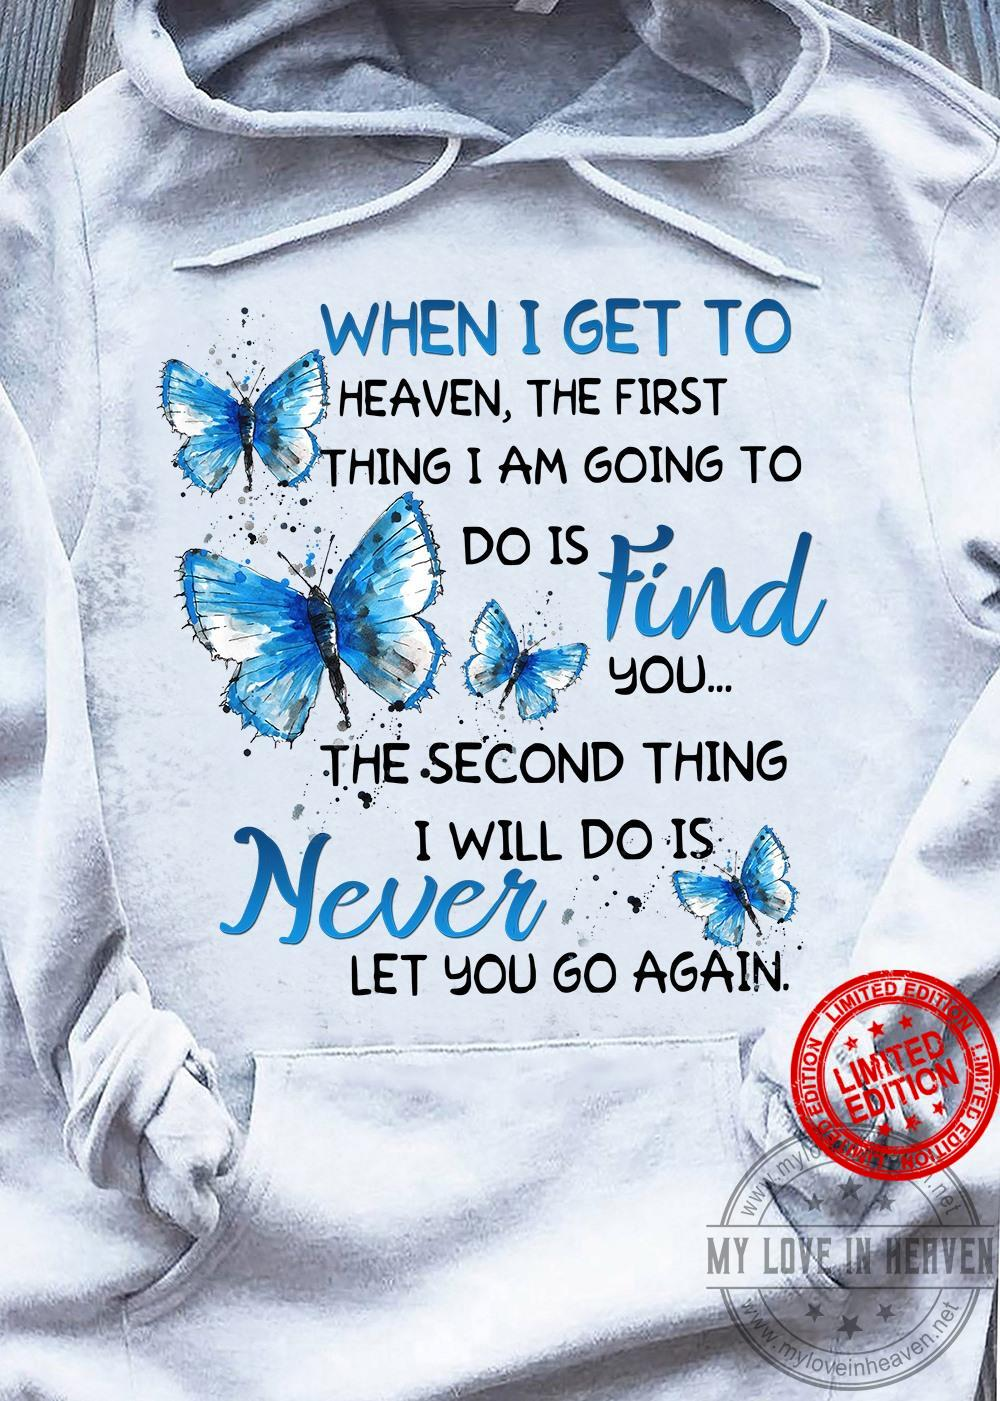 When I Get To Heaven The First Thing I Am Going To Do Is Find You The Second Thing I Will Do Is Never Let You Go Again Shirt